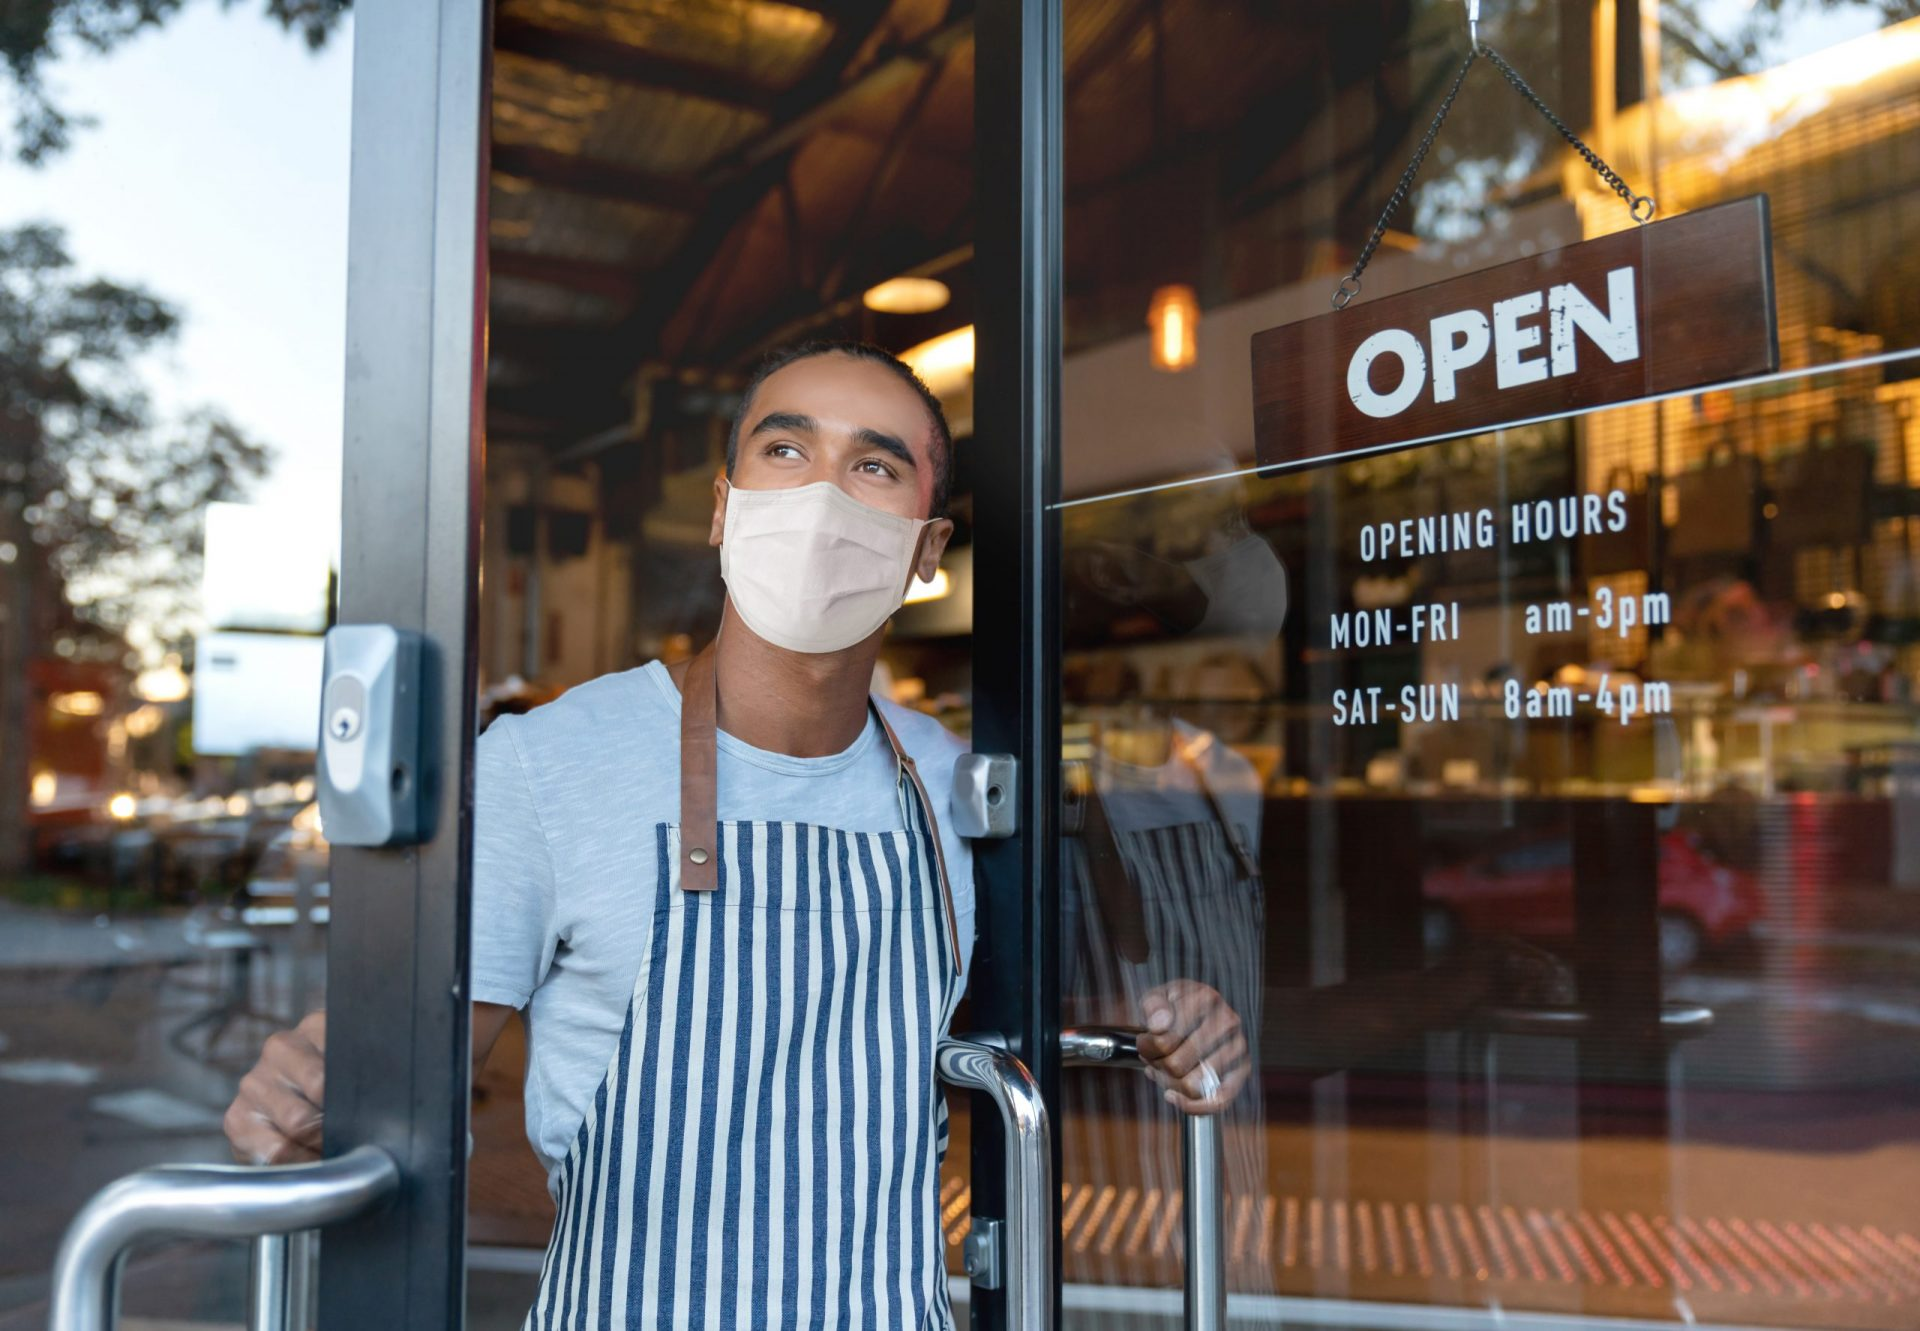 Business owner opening the door at a cafe wearing a facemask to avoid the spread of coronavirus – reopening after COVID-19 concepts